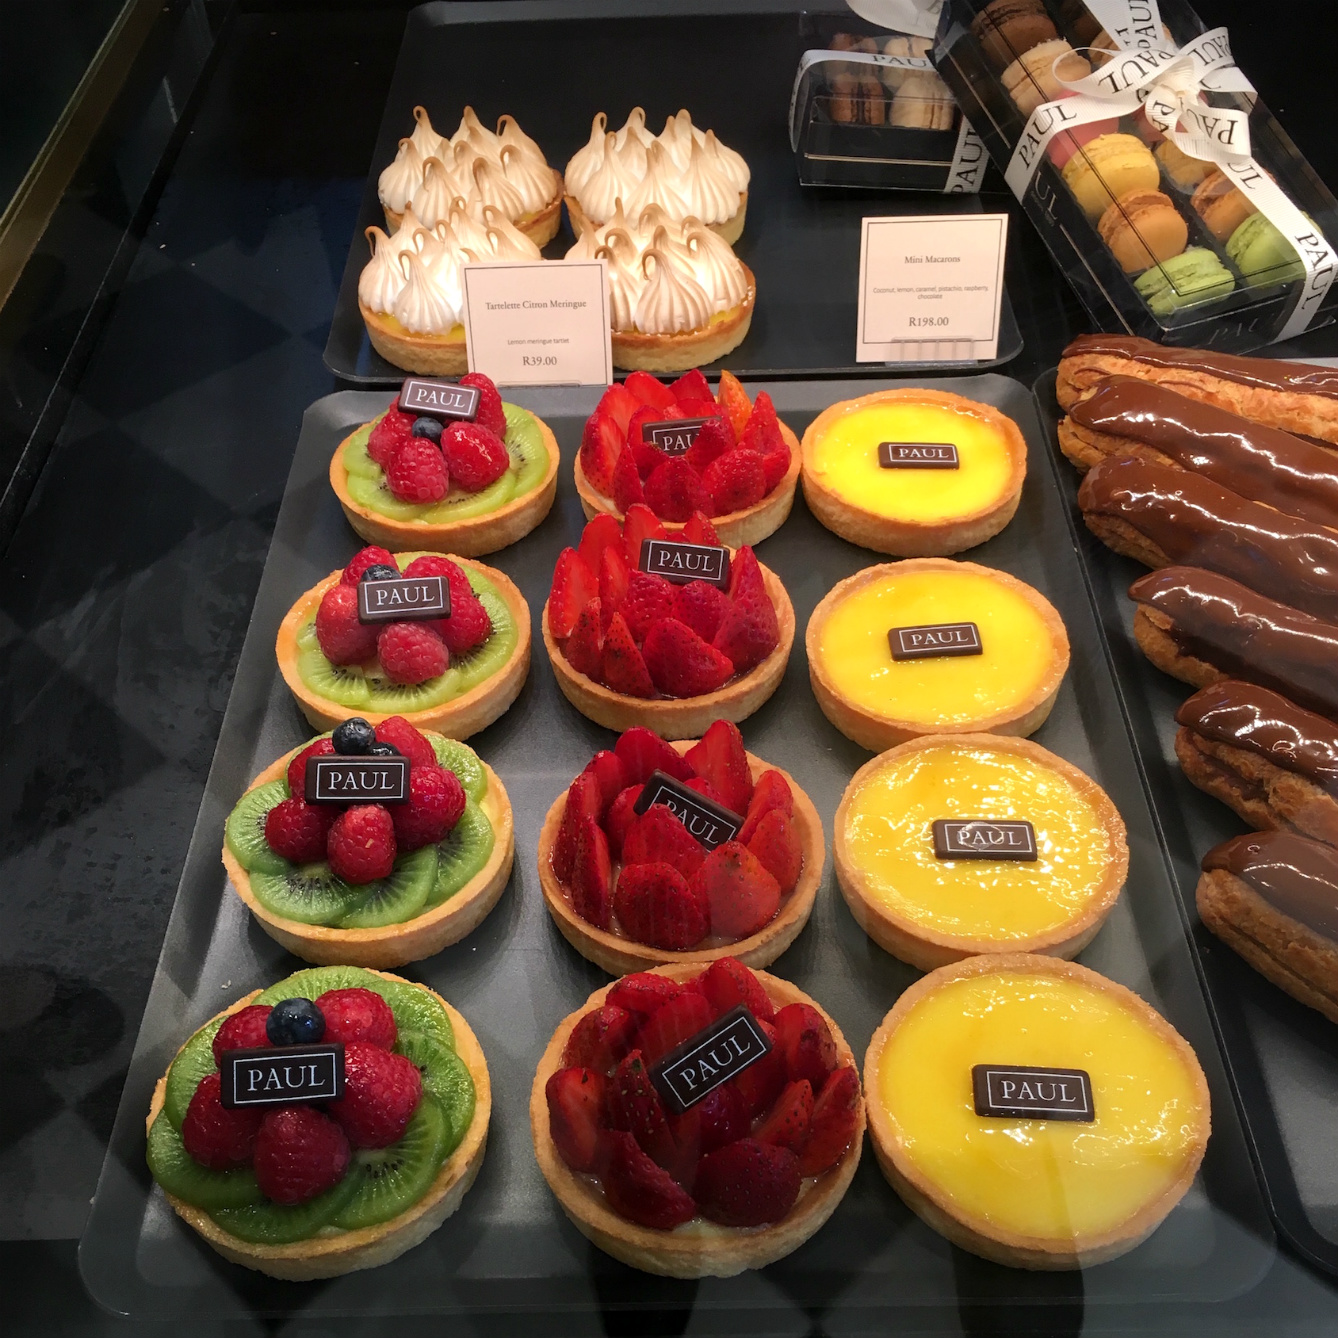 Traditional French patisseries, raspberries and lemon tartlets at PAUL bakery